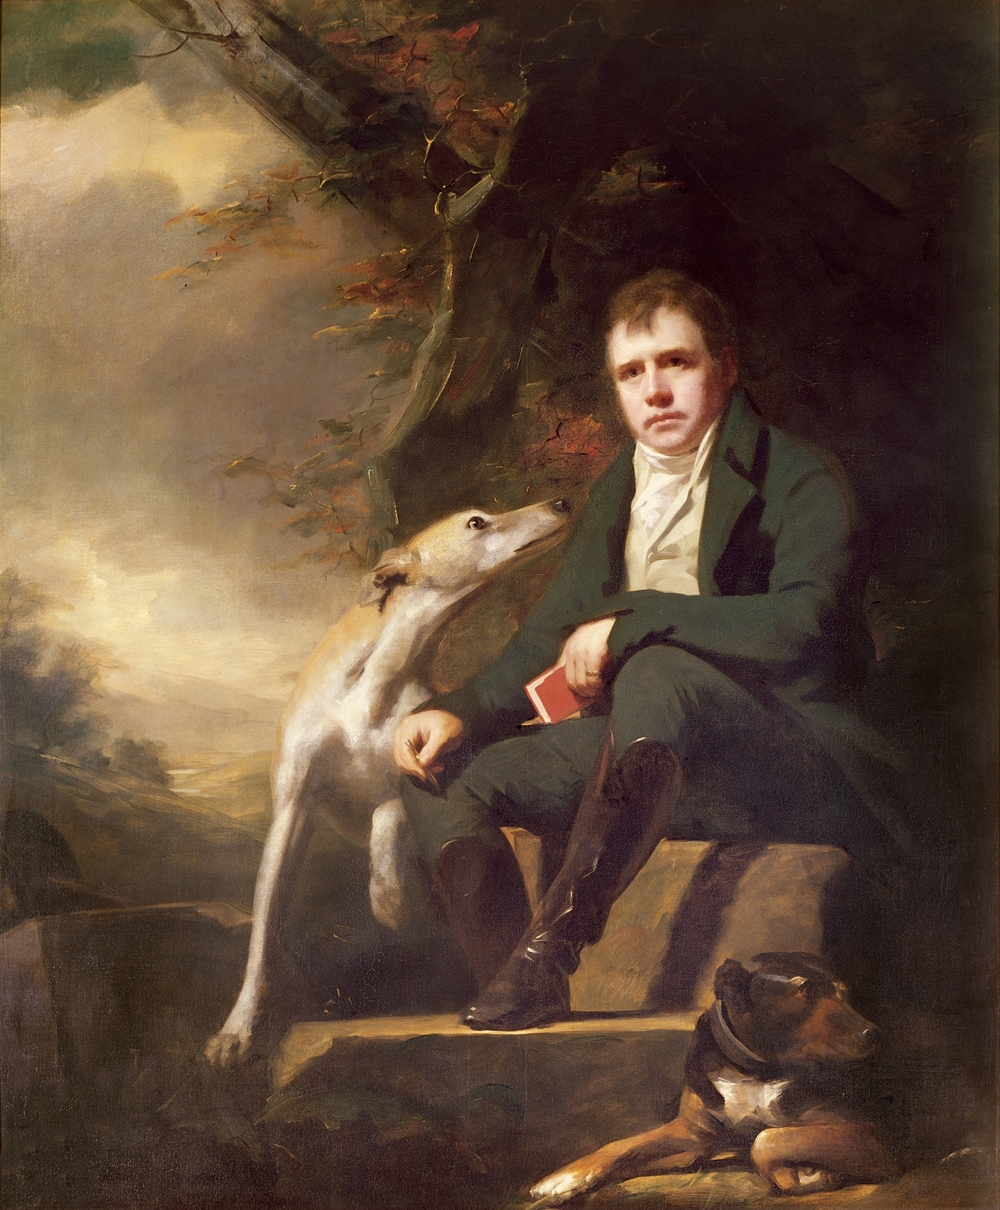 Henry Raeburn's portrait of Walter Scott and dogs (1823).